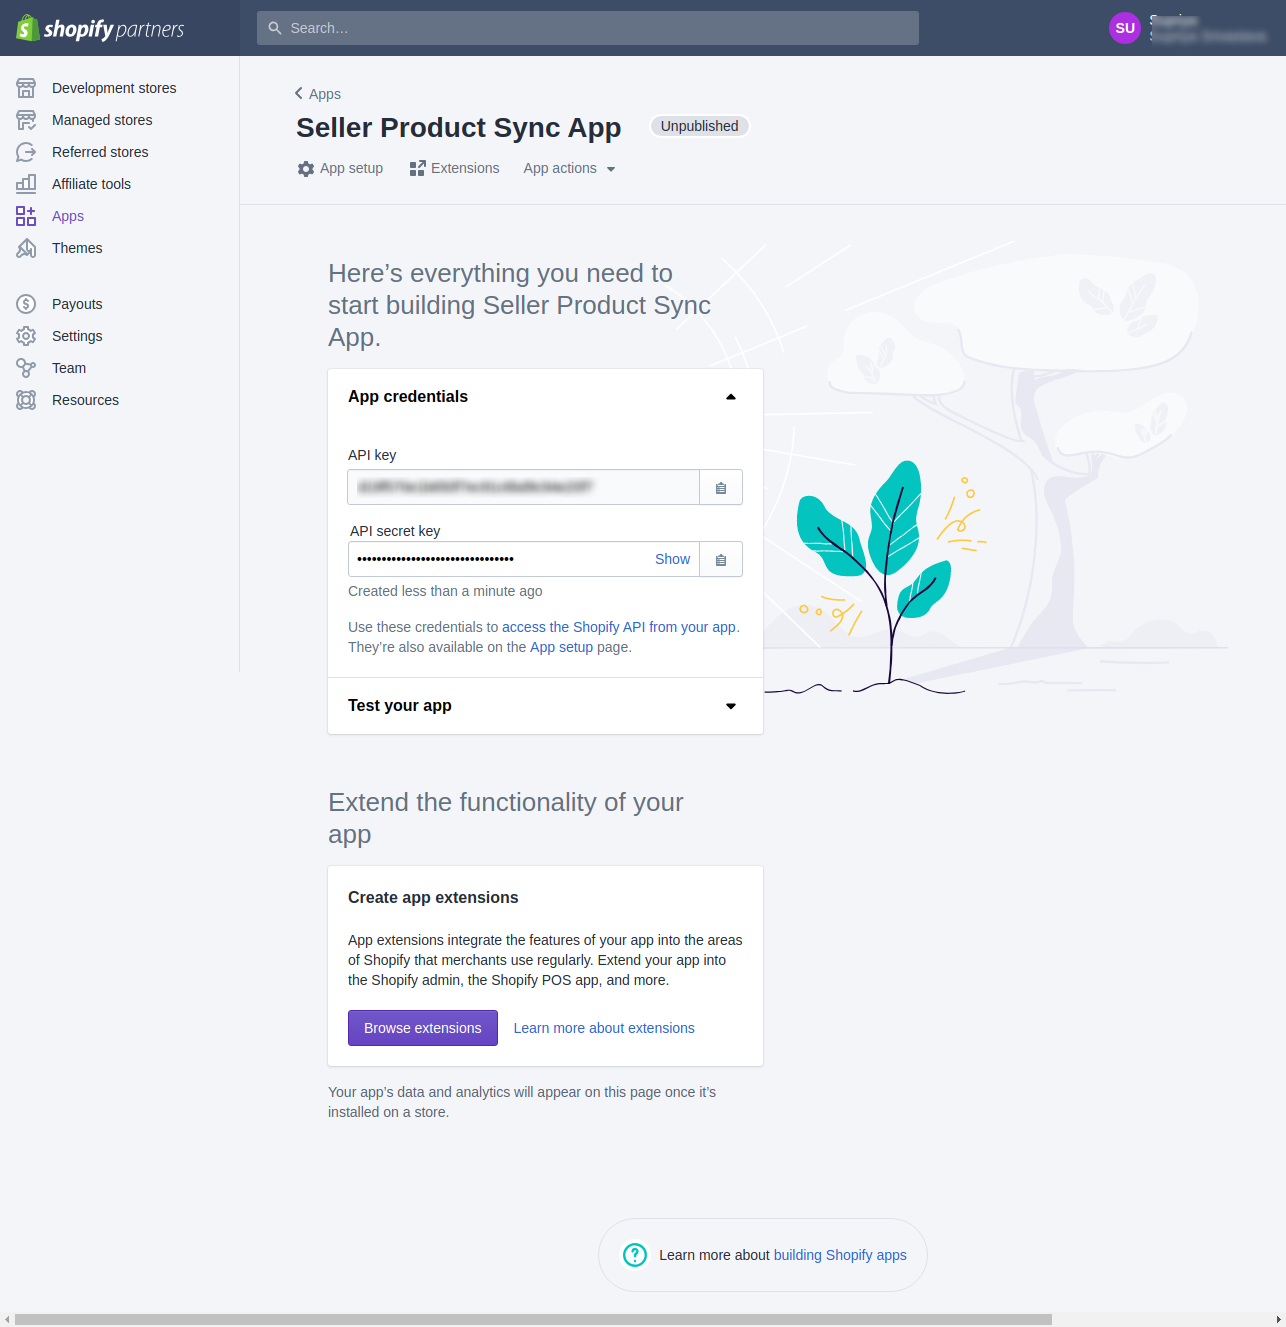 Multivendor Marketplace App for Shopify- Seller Product Sync